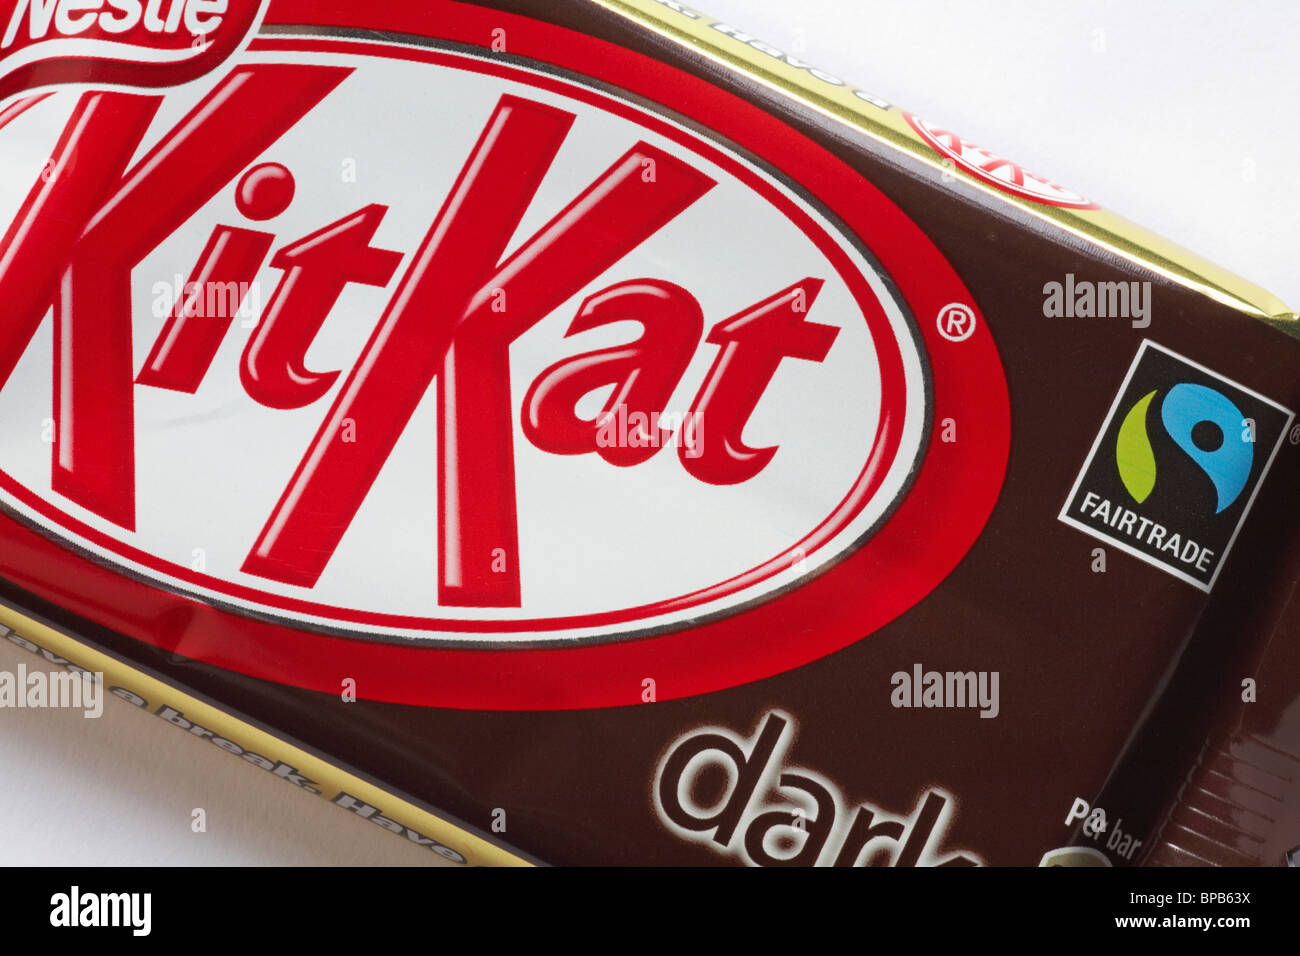 Estremamente Fairtrade logo on dark plain Kit Kat chocolate bar - KitKat Kit GT82